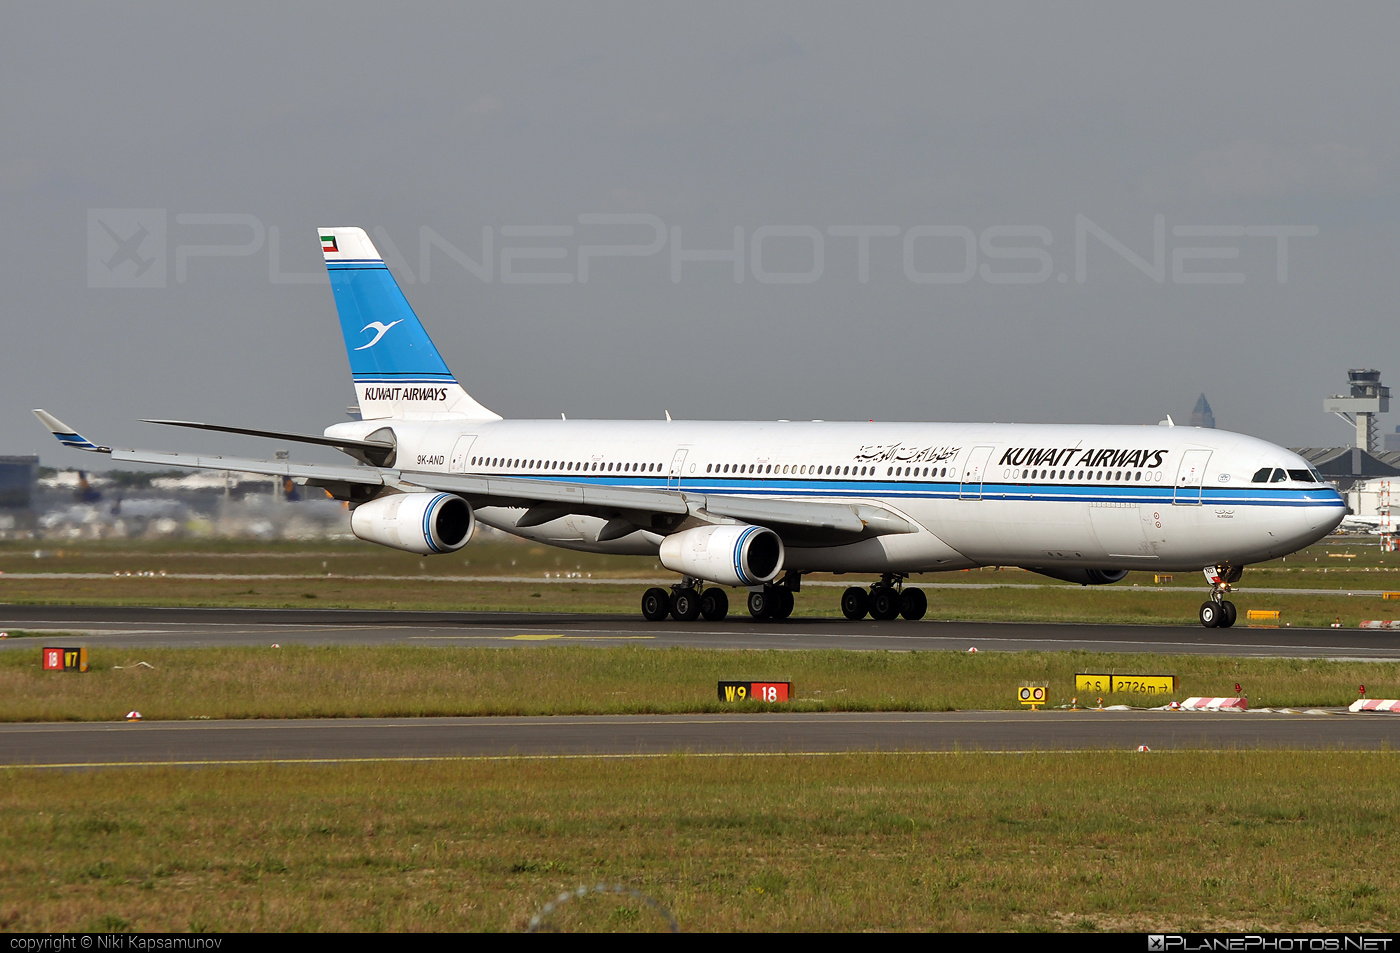 Airbus A340-313 - 9K-AND operated by Kuwait Airways #a340 #a340family #airbus #airbus340